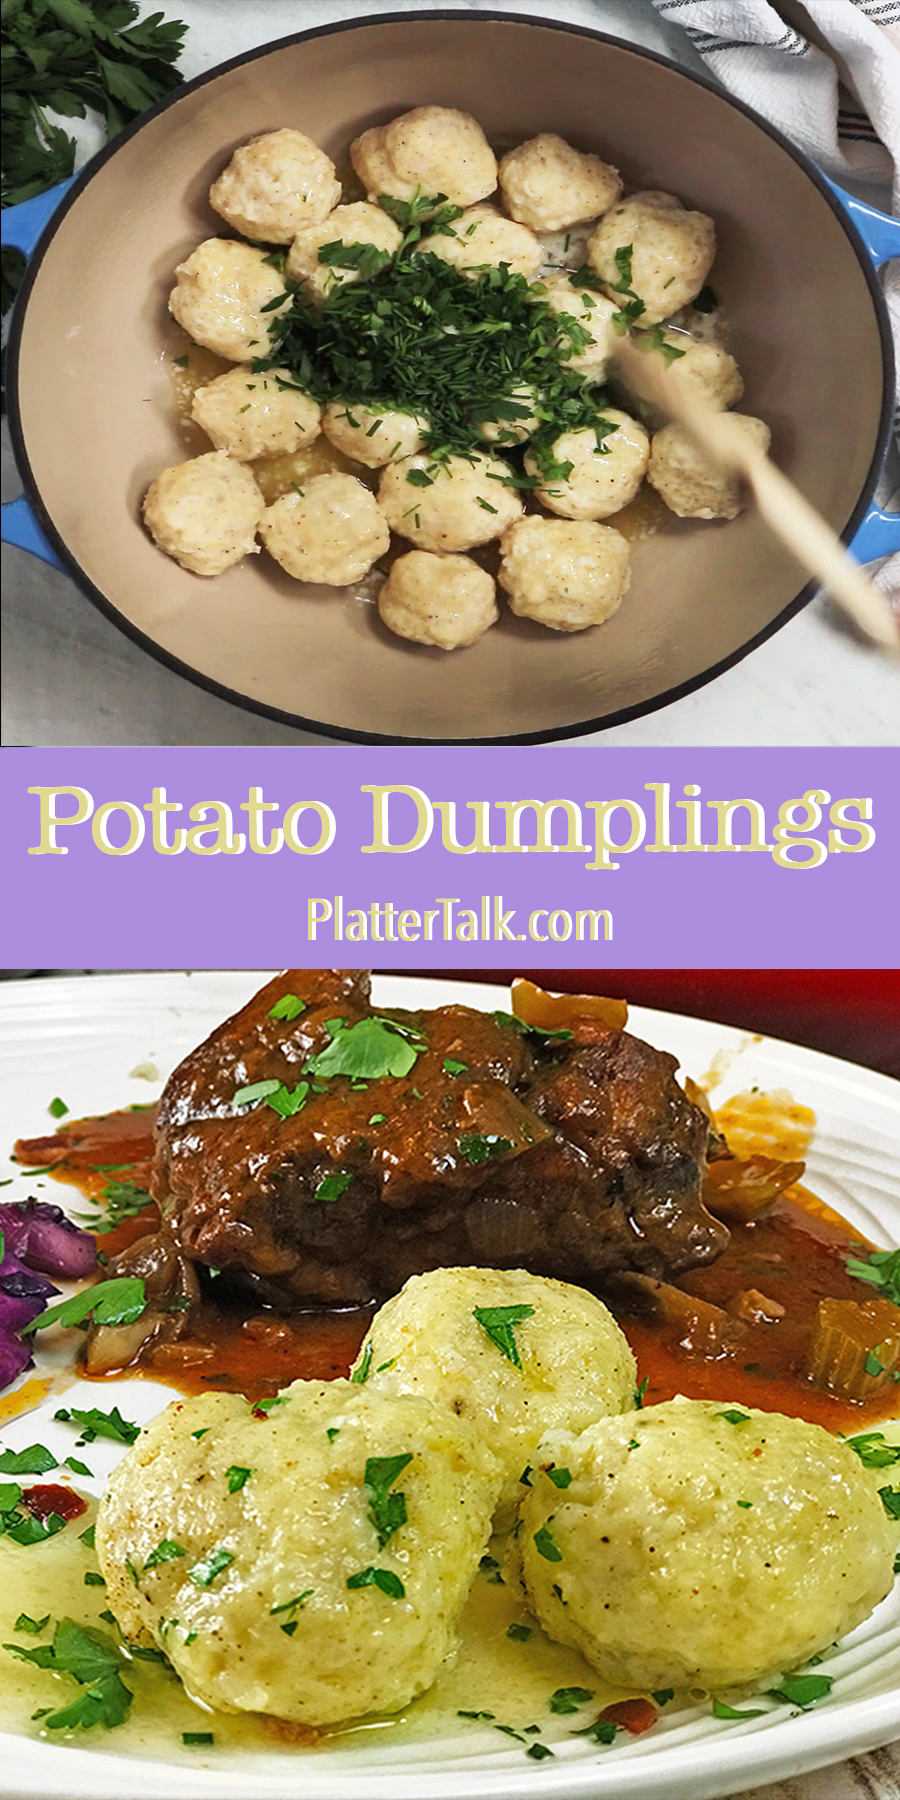 Potato Dumplings Kartoffelknodel Recipe Video In 2020 European Dishes German Food Authentic Potato Dumplings